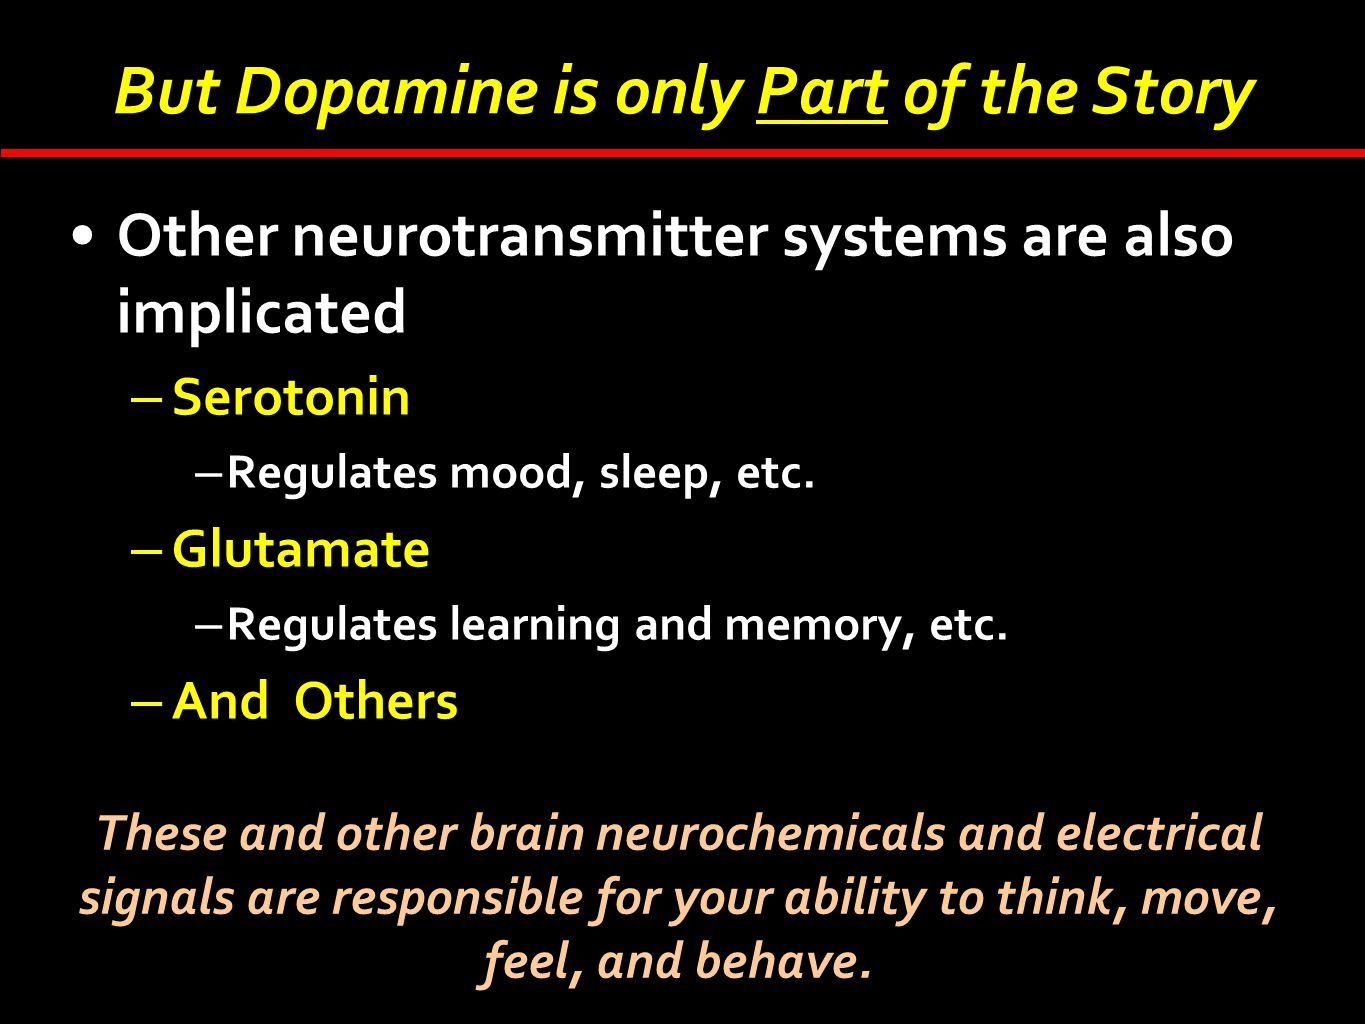 But Dopamine is only Part of the Story Other neurotransmitter systems are also implicated –Serotonin –Regulates mood, sleep, etc. –Glutamate –Regulate